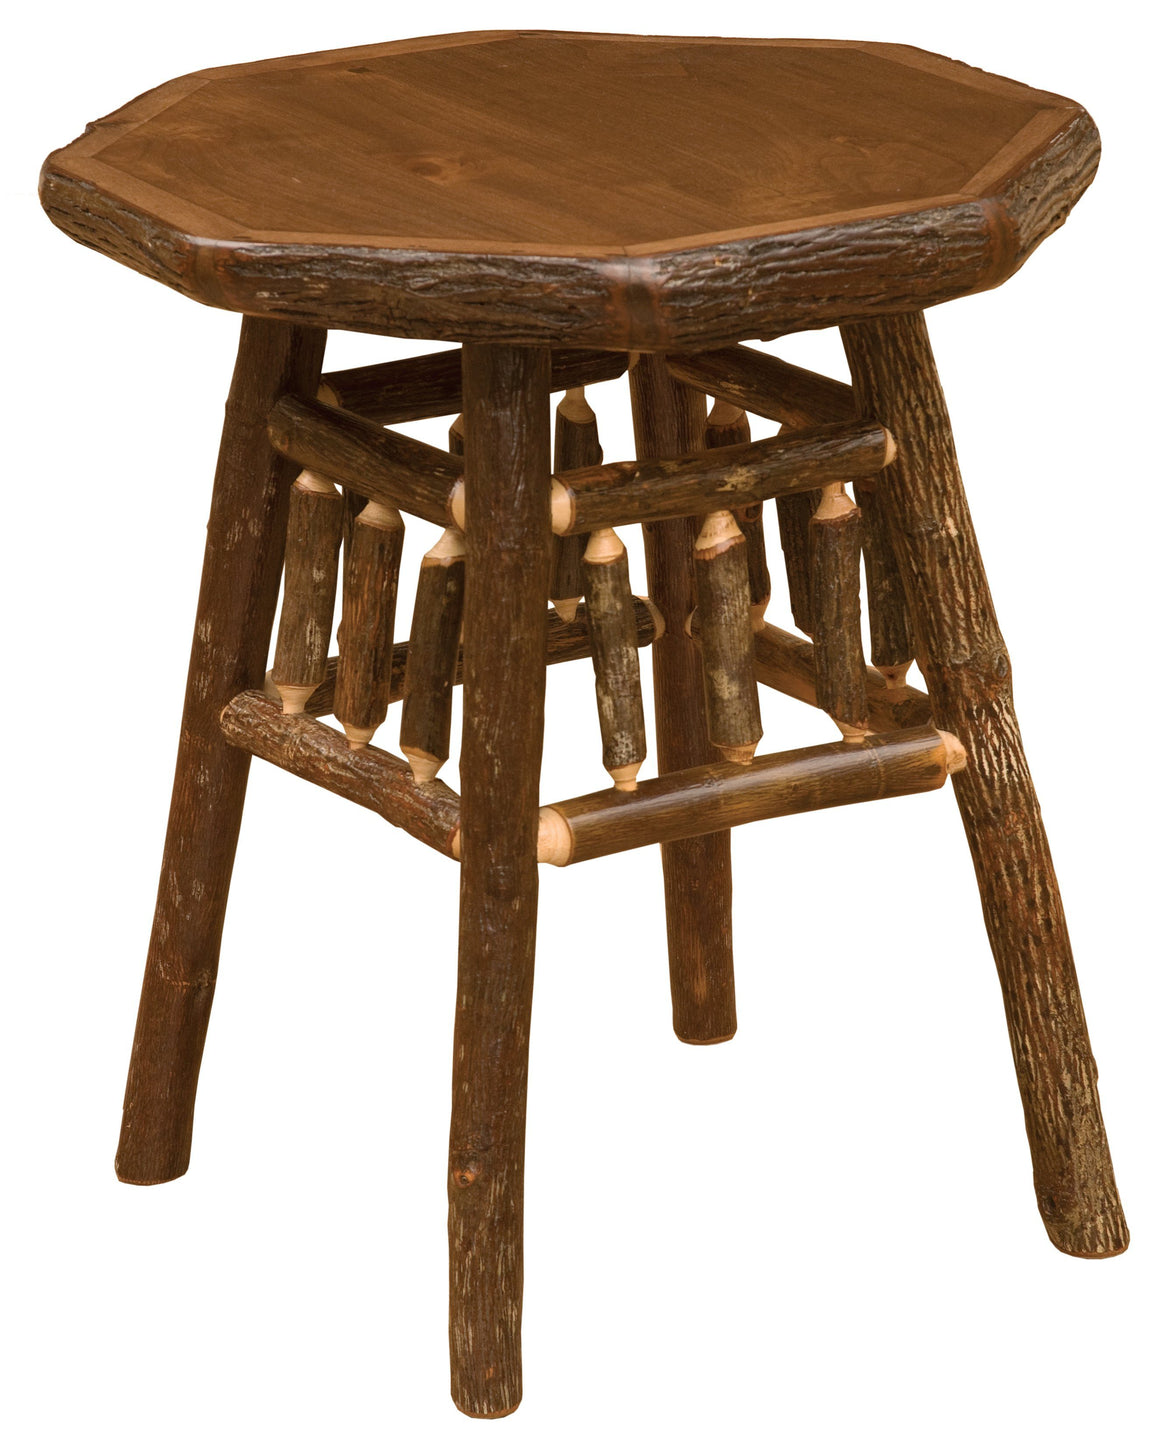 Hickory Log Teton End Table - Standard Finish - Rustic Deco Incorporated